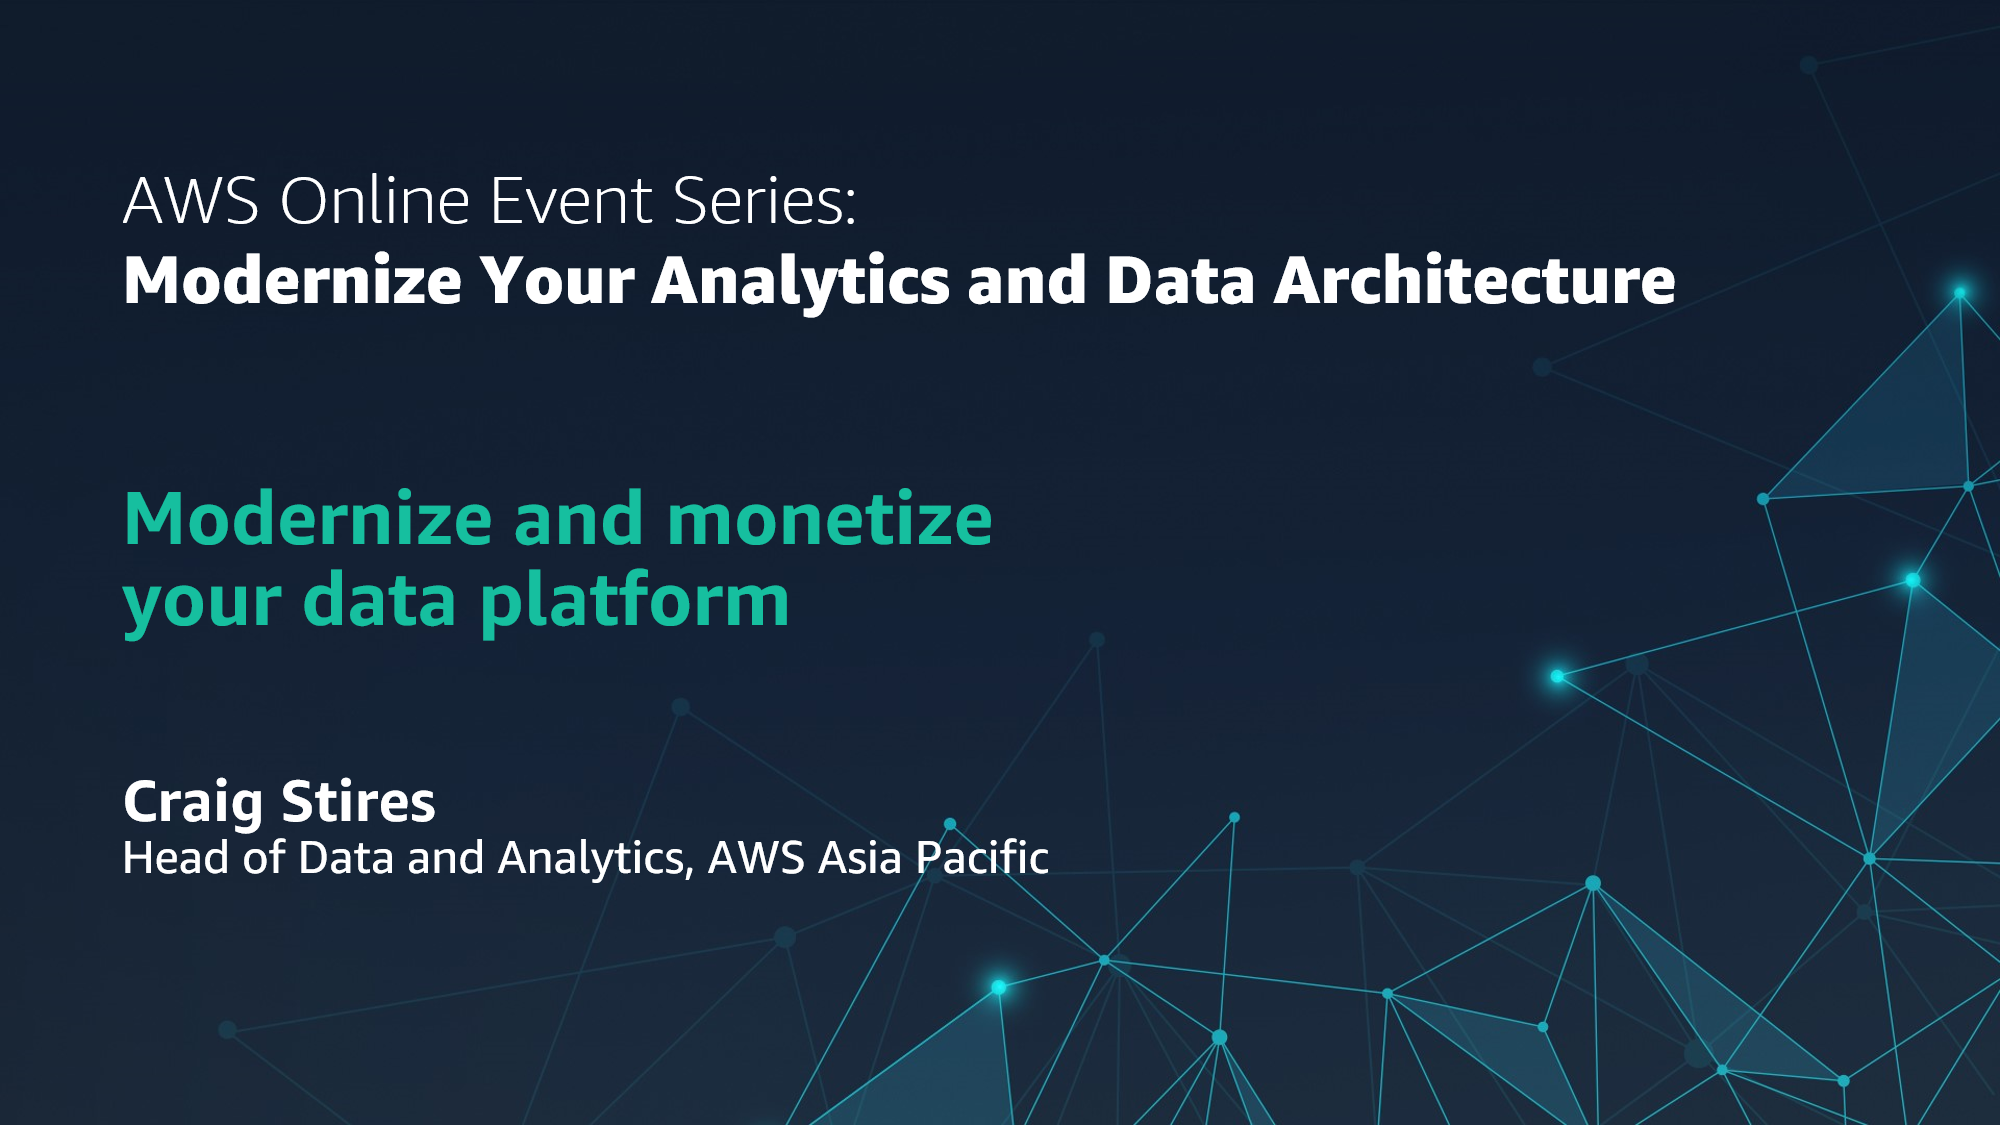 Modernize and monetize your data platform